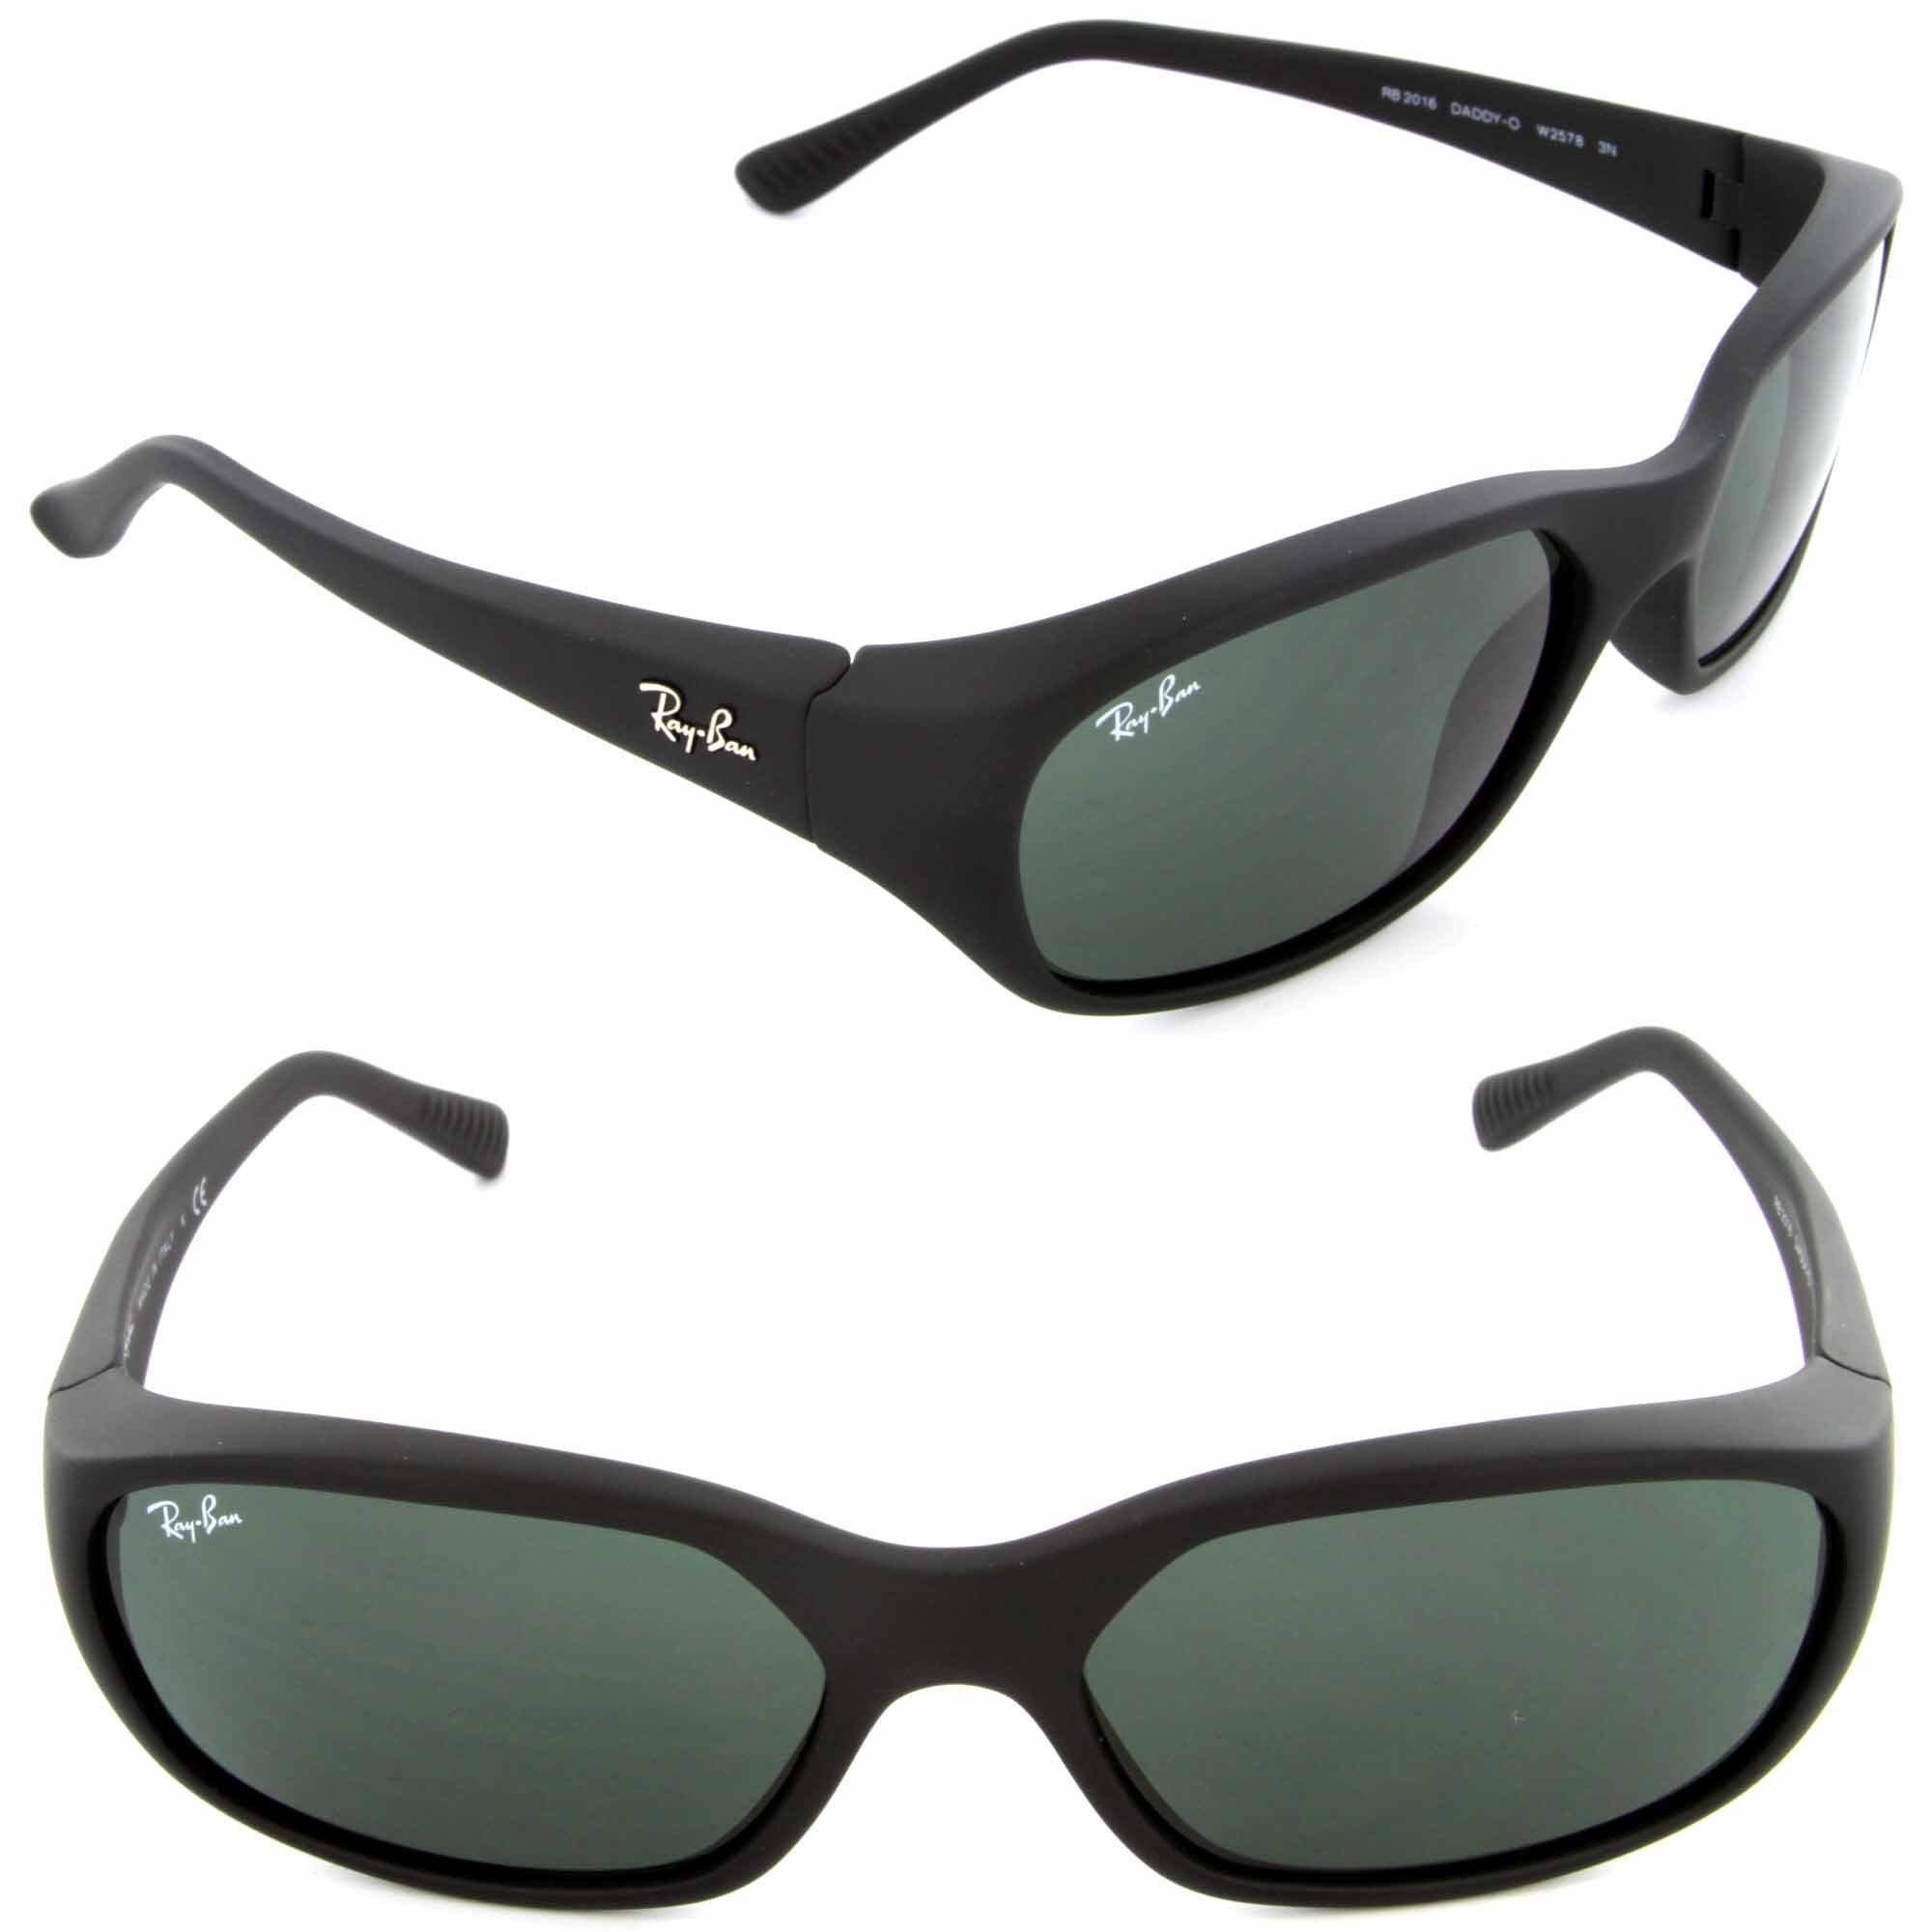 d8e6a93cdf Shop Ray-Ban DADDY-O SQUARE WRAP SUNGLASSES RB 2016 W2578 - Free Shipping  Today - Overstock - 10022925